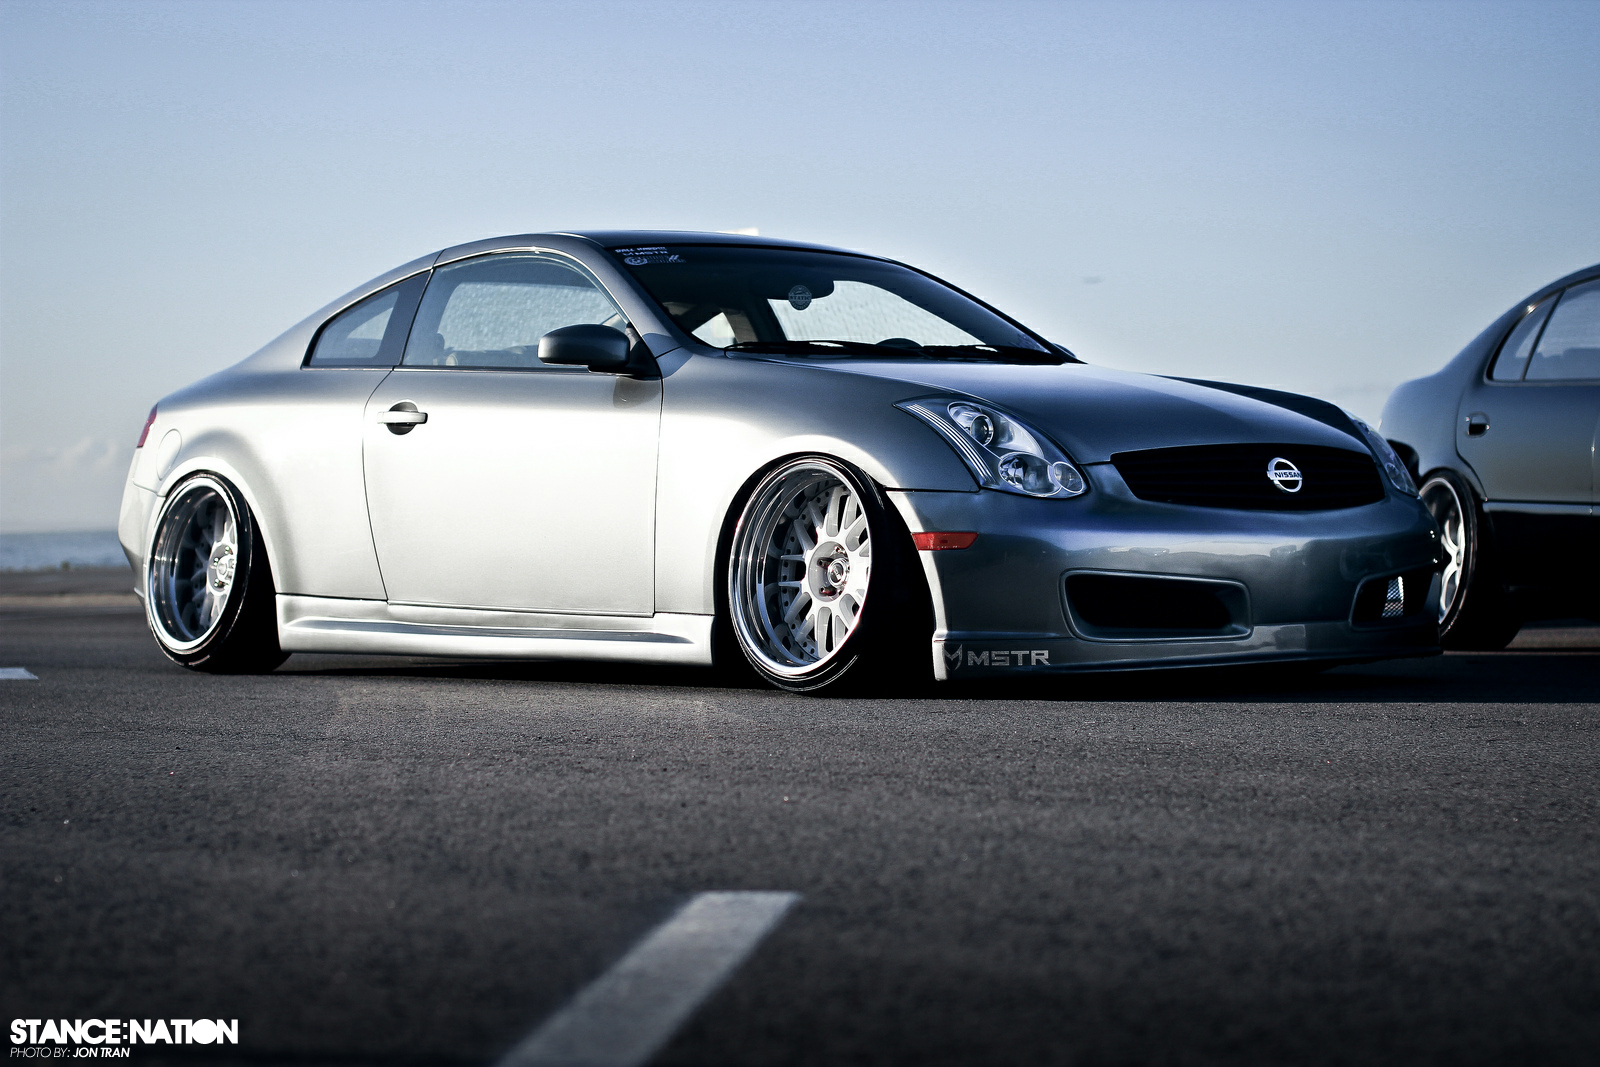 191 best g35 coupe images on pinterest infinity nissan skyline 191 best g35 coupe images on pinterest infinity nissan skyline and dream cars vanachro Gallery